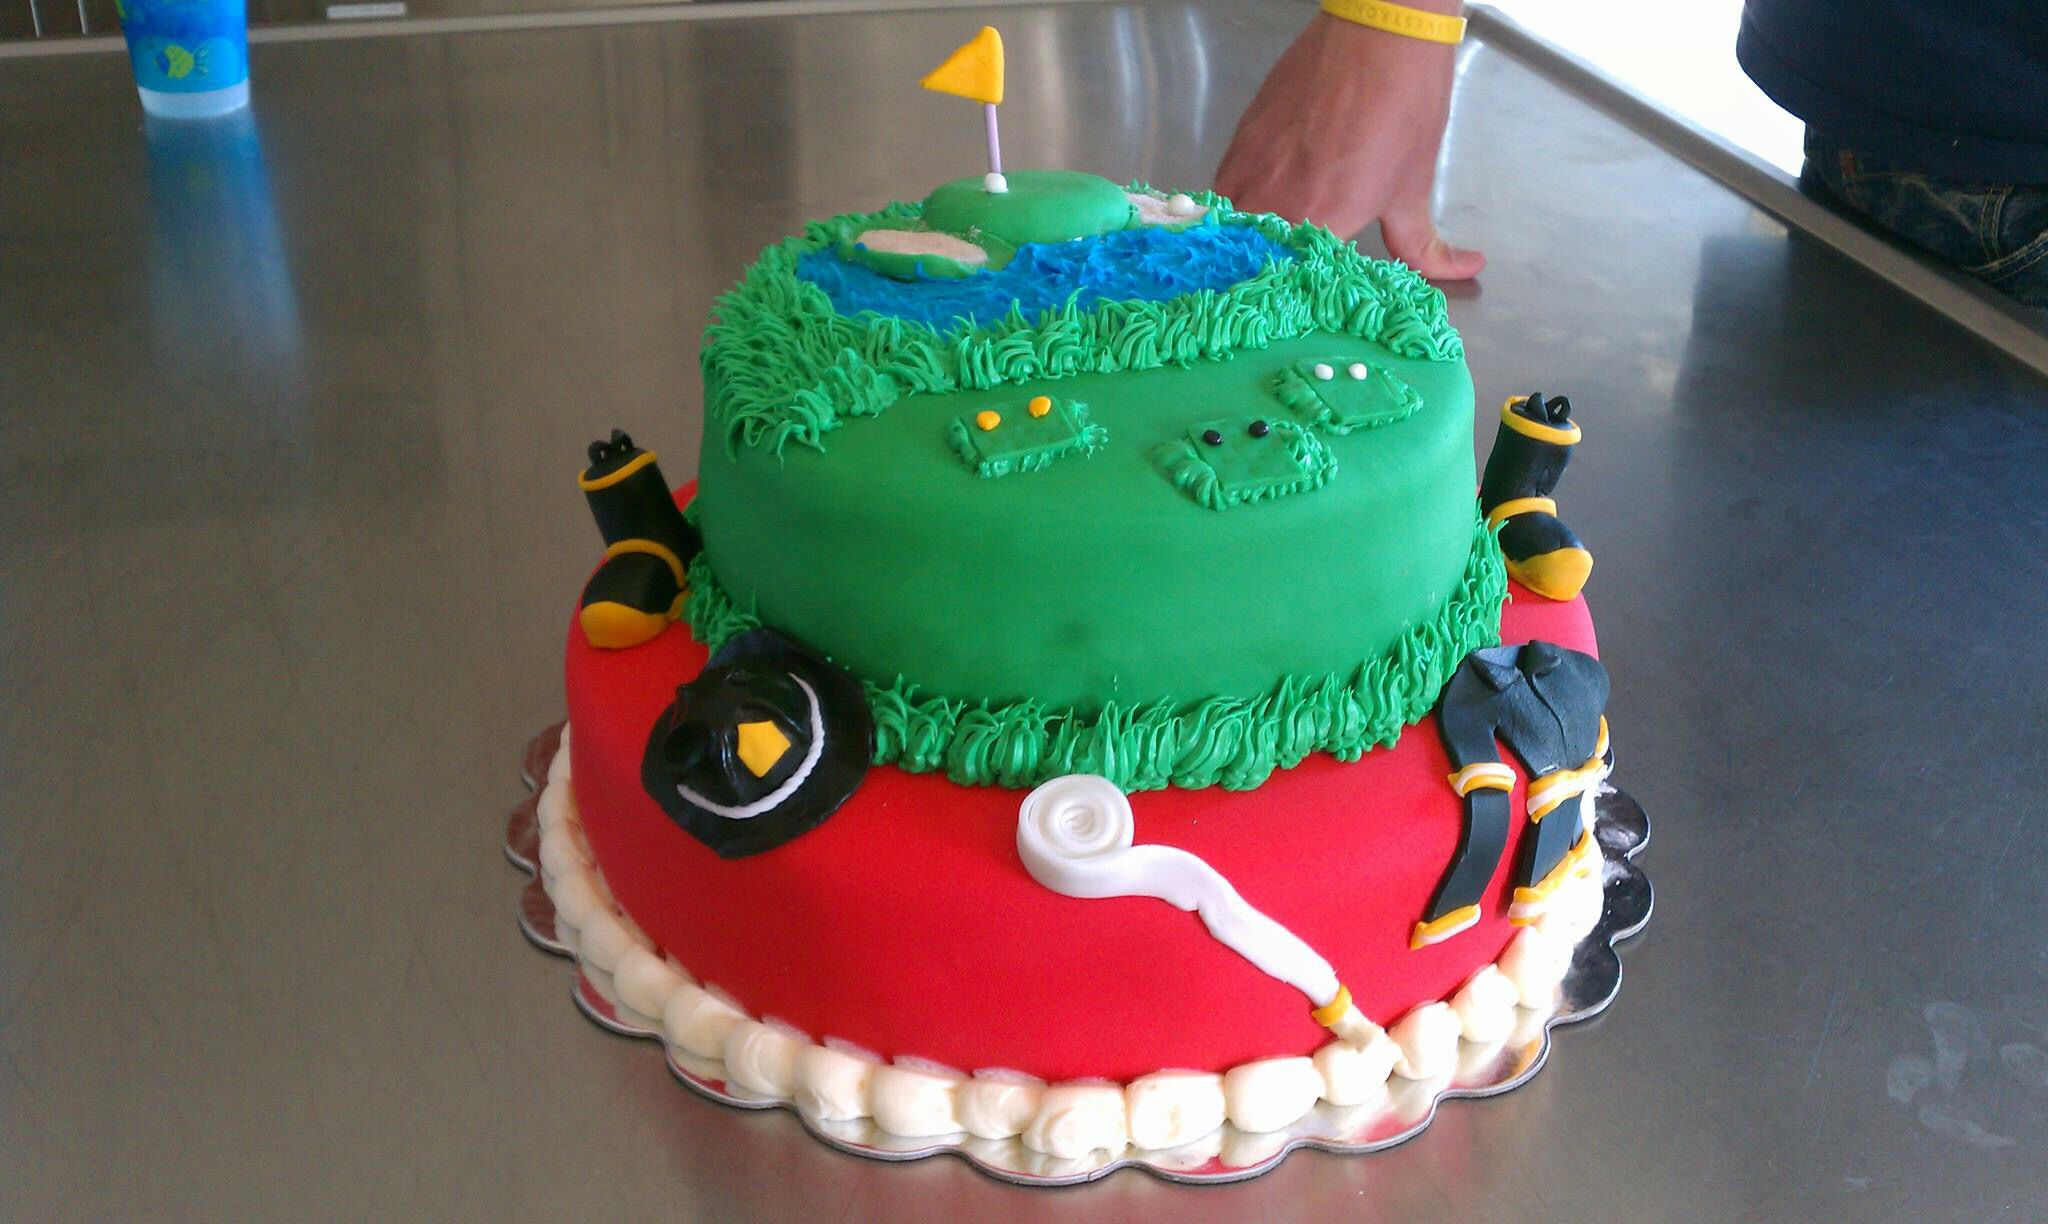 Firefighter/Golf Inspired Birthday Cake. All items sculpted with fondant.